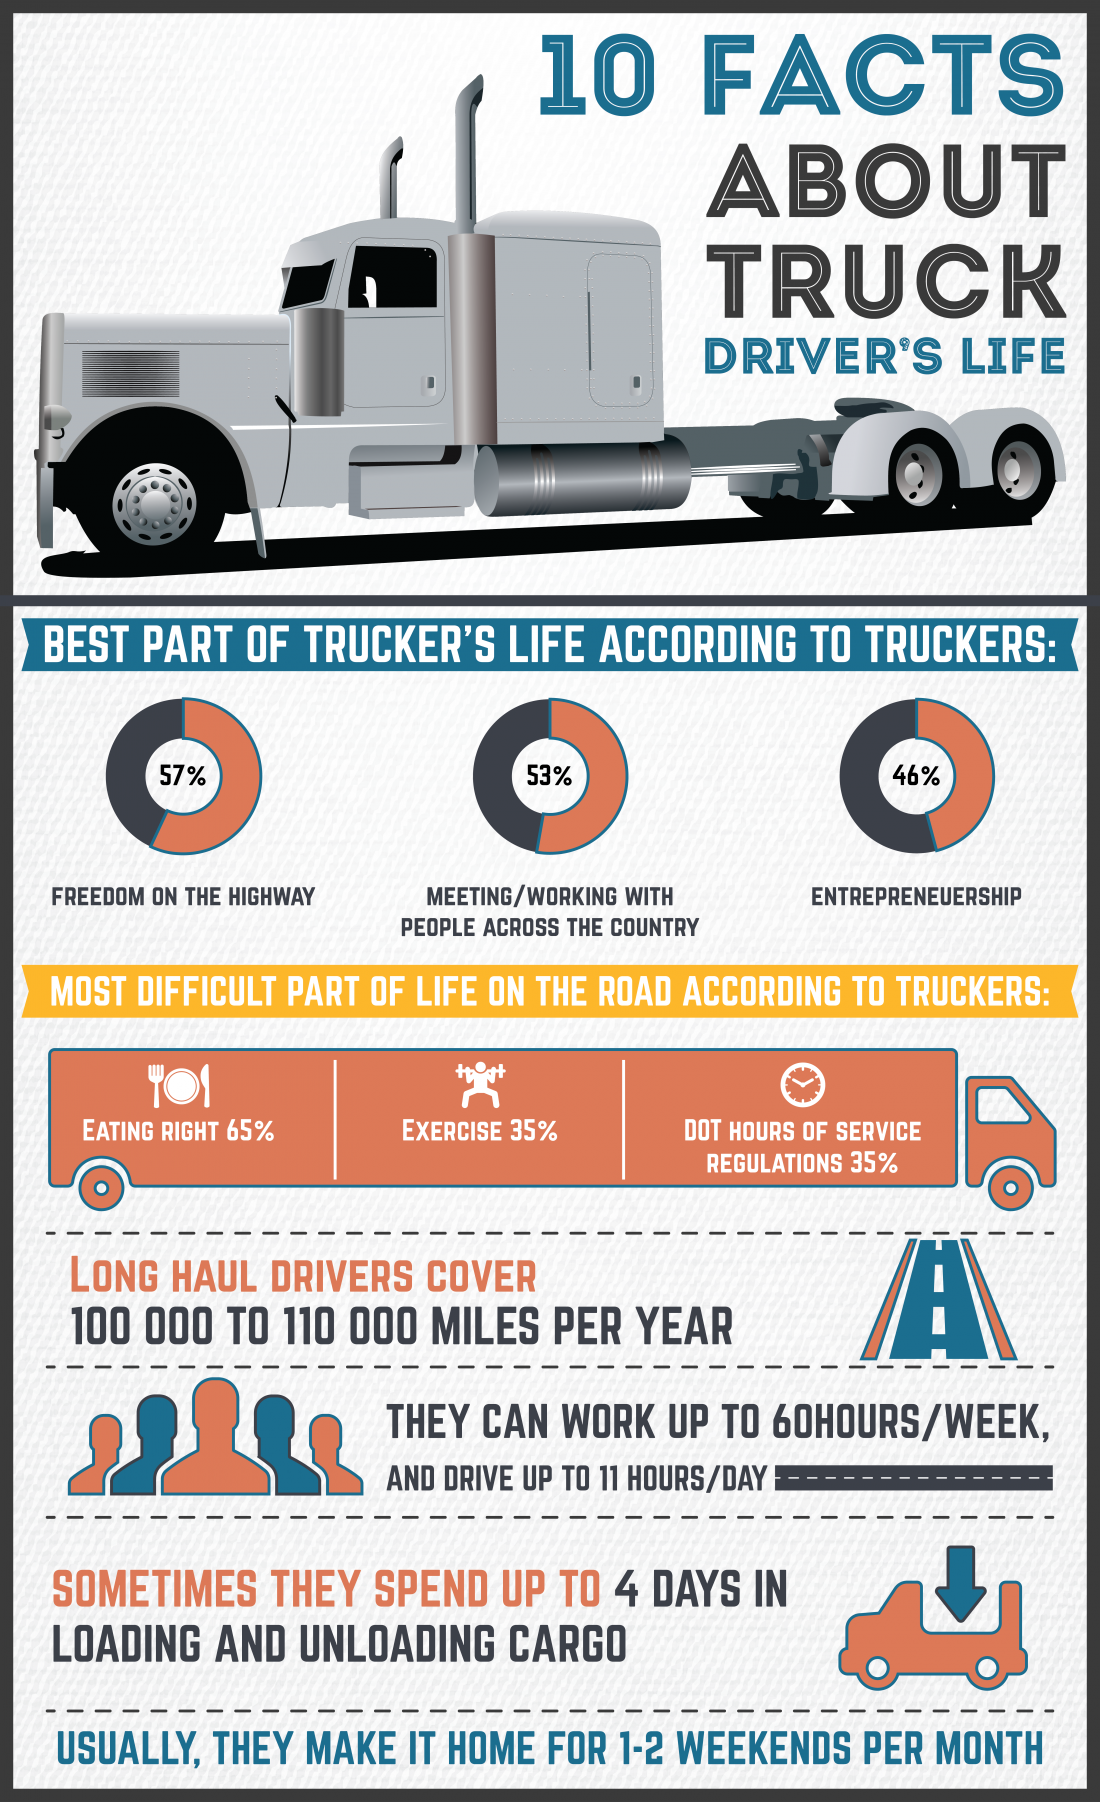 10-facts-about-truck-driverss-life